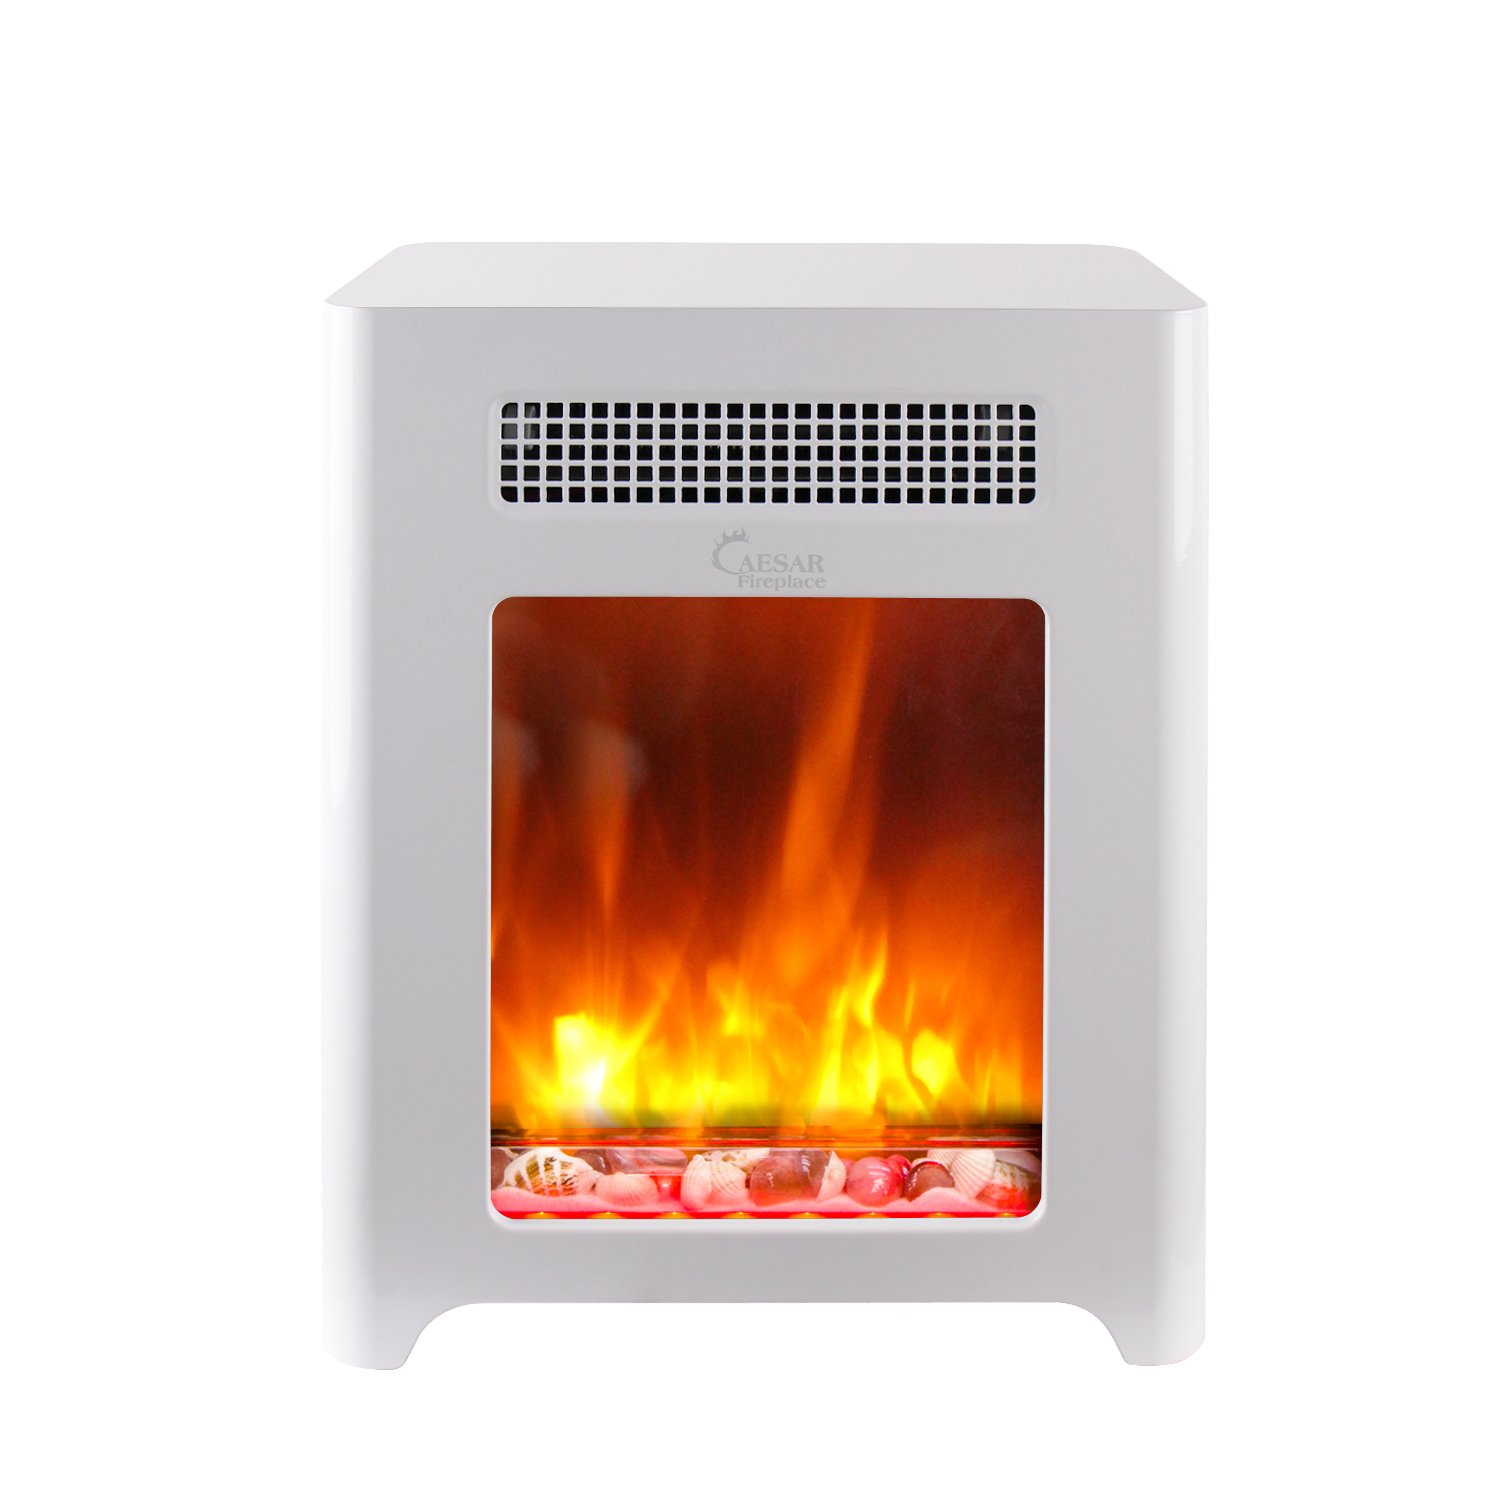 Caesar Fireplace CHFP-003 Luxury Portable Mini Indoor Compact Freestanding Room Heater